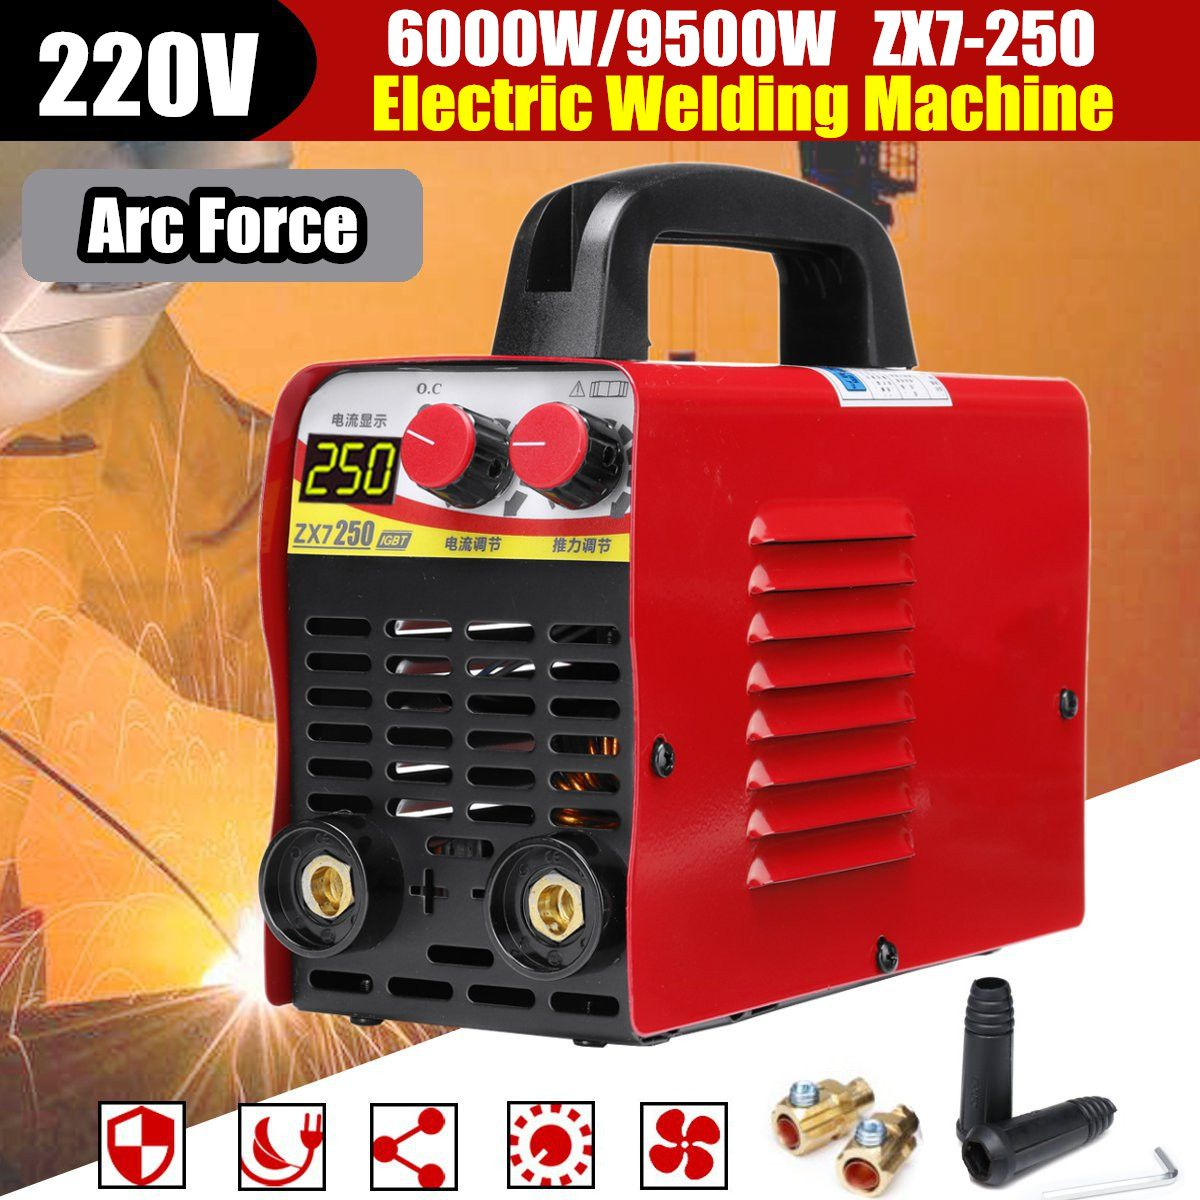 Mini/Pro 220V 6KW/9.5KW ZX7-250 10-250A Arc Force Electric Welding Machine LCD Display MMA IGBT Inverter Welders NewestMini/Pro 220V 6KW/9.5KW ZX7-250 10-250A Arc Force Electric Welding Machine LCD Display MMA IGBT Inverter Welders Newest